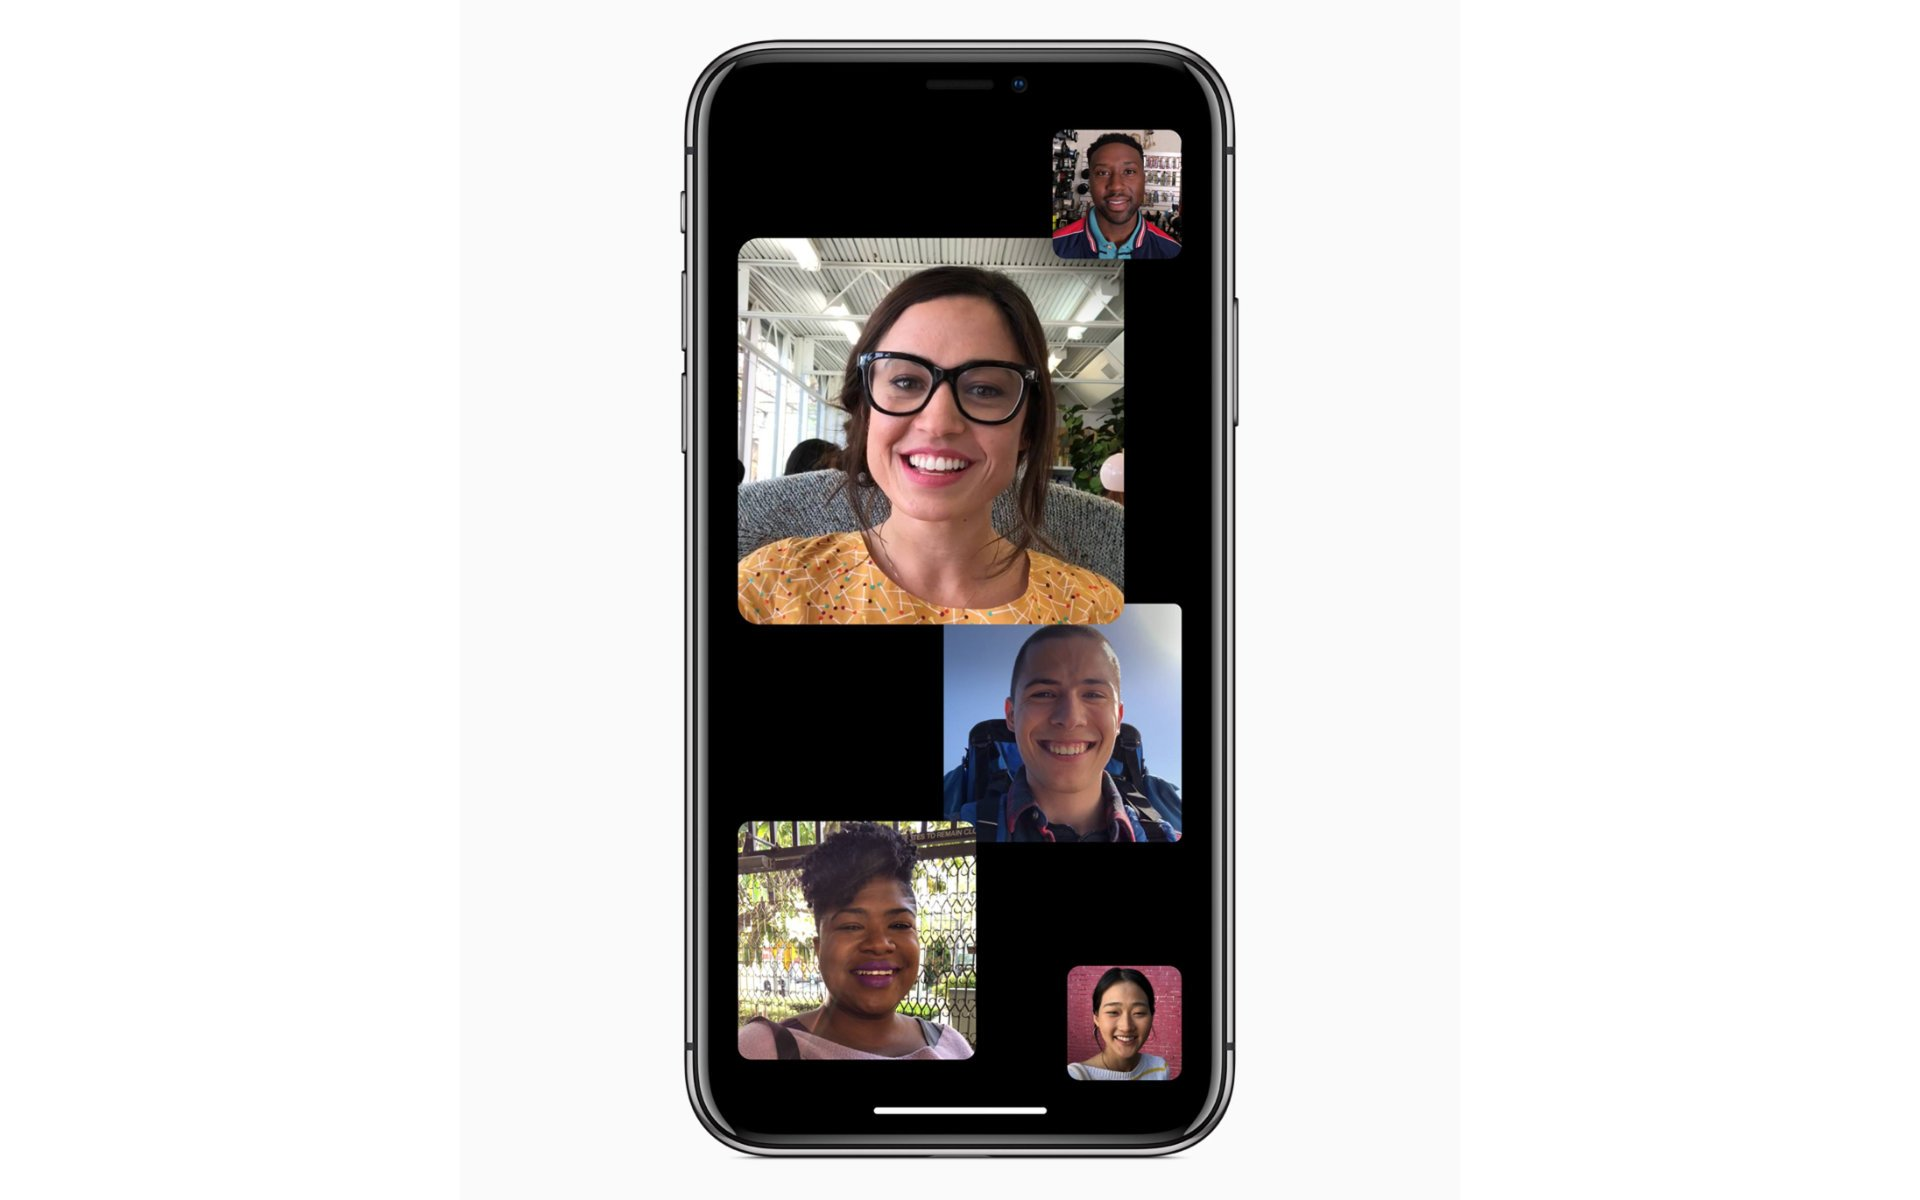 Faille FaceTime : Apple s'excuse et promet un correctif rapide